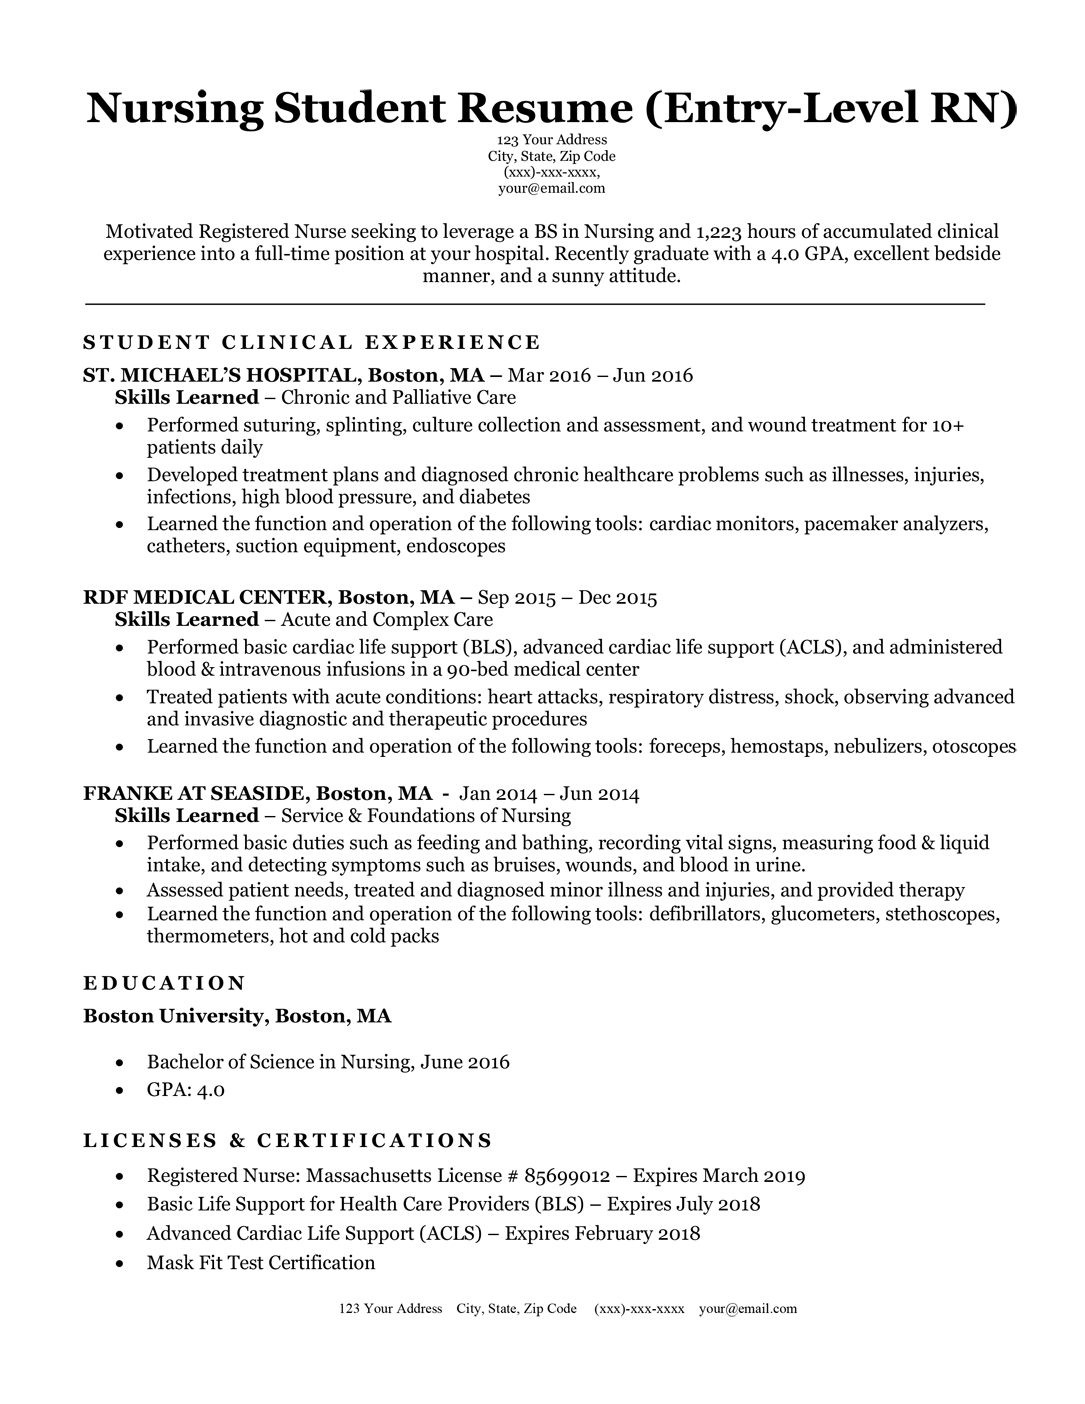 Nursing student / entry-level nurse resume sample